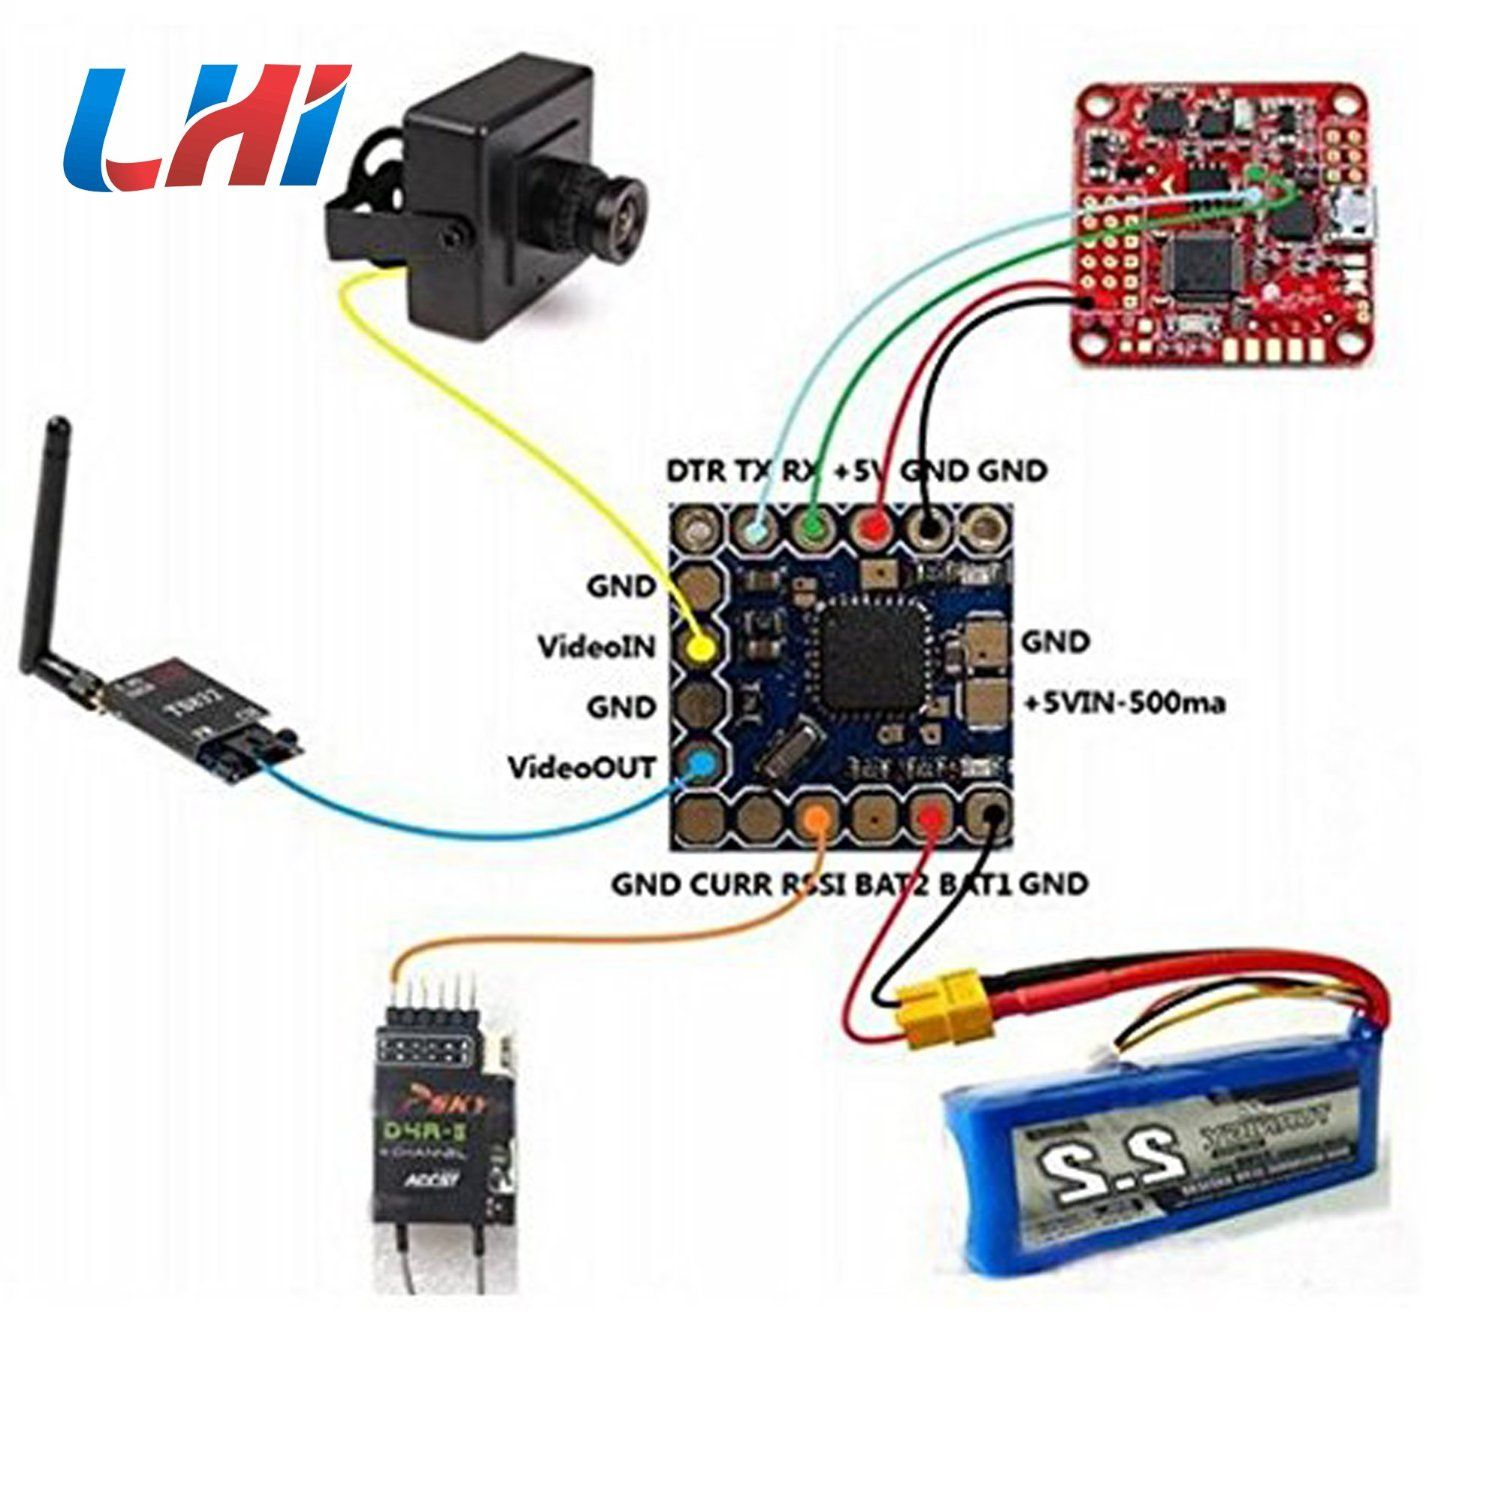 Amazon lhi micro minimosd minim osd mini osd w kv team mod for how to connect components may these quadcopter wiring diagram guide help you making a few of your own drone a bit easier drone wiring diagram very asfbconference2016 Image collections